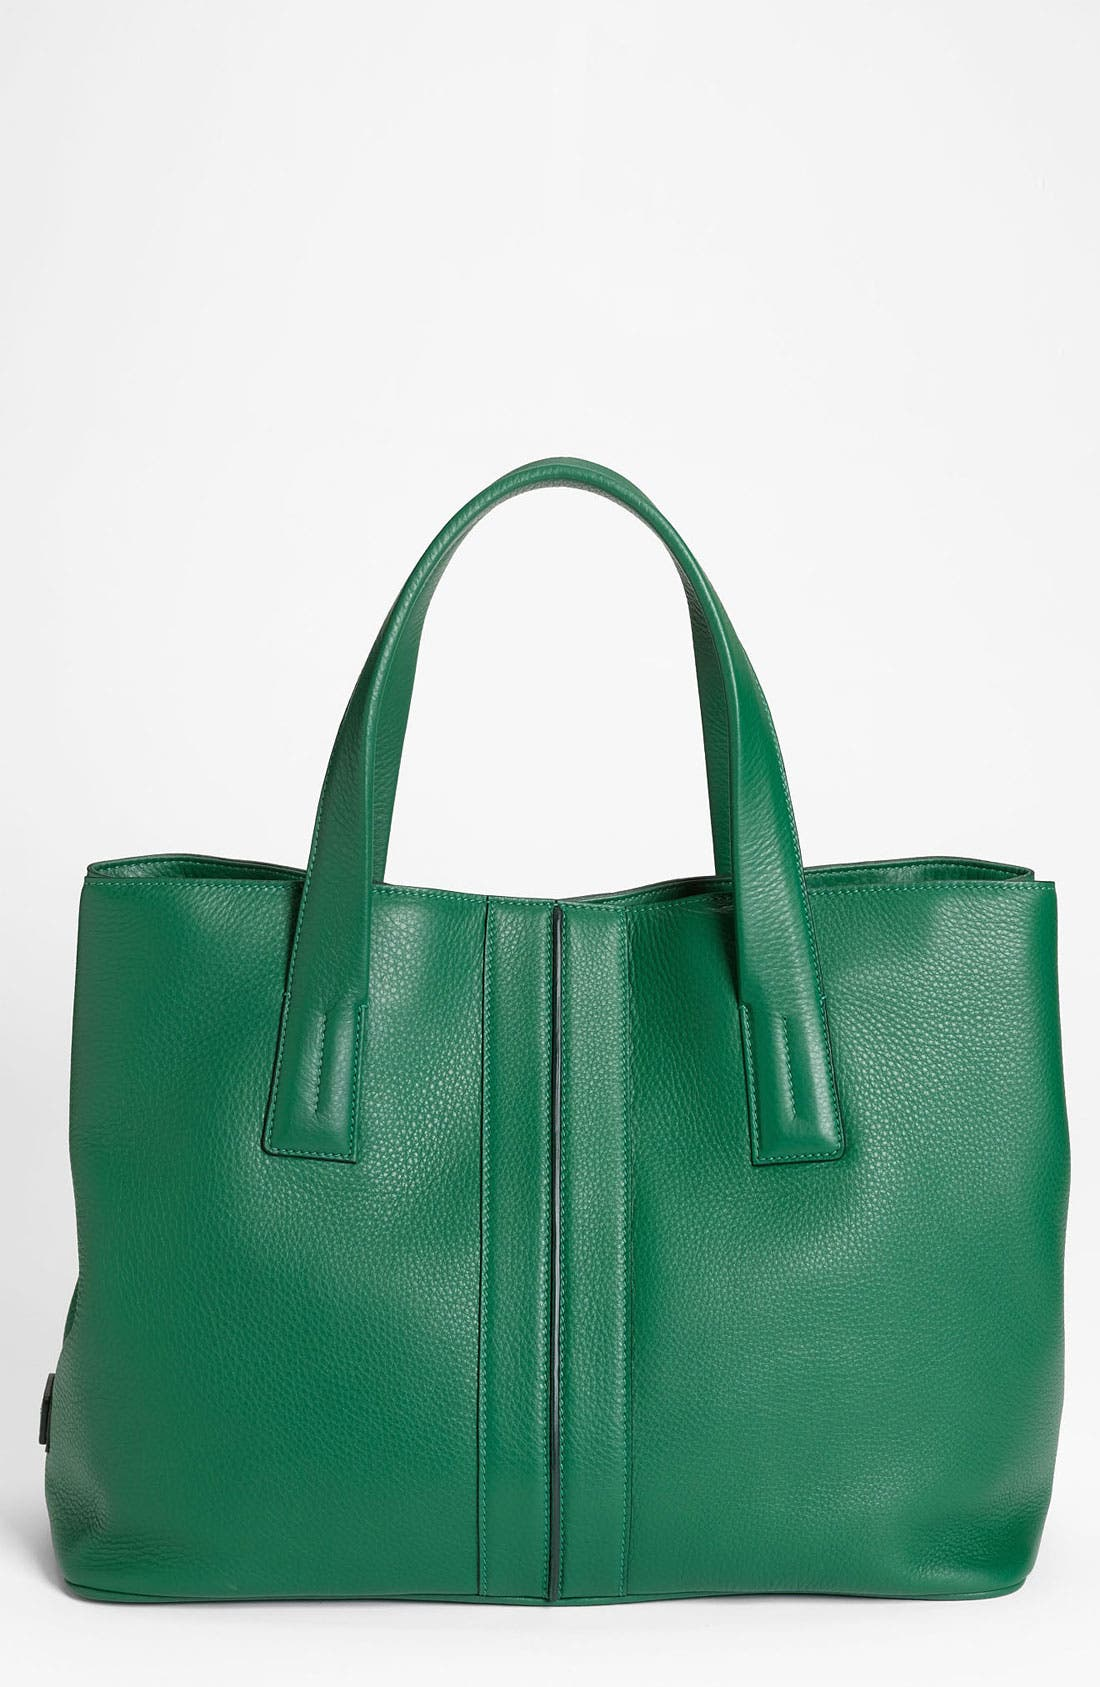 Main Image - Tod's East/West Tote Bag